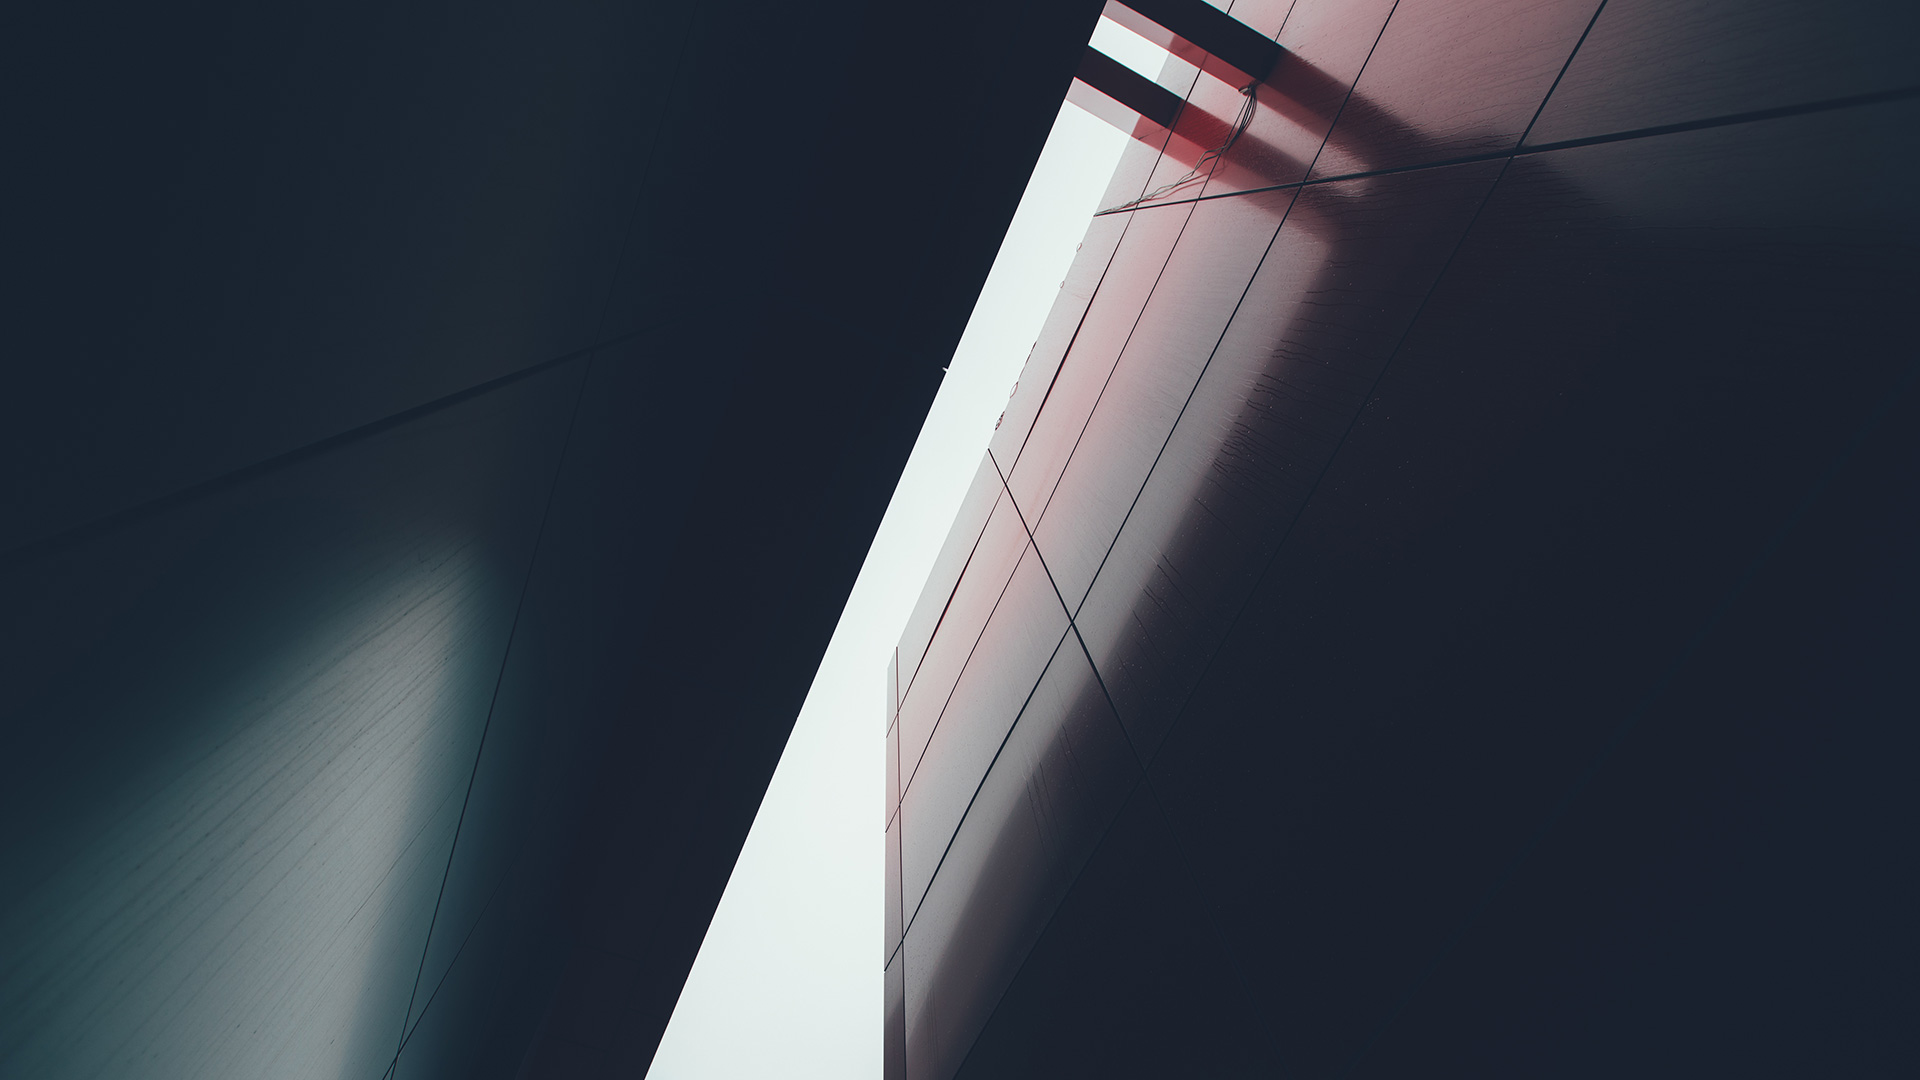 abstract steel building